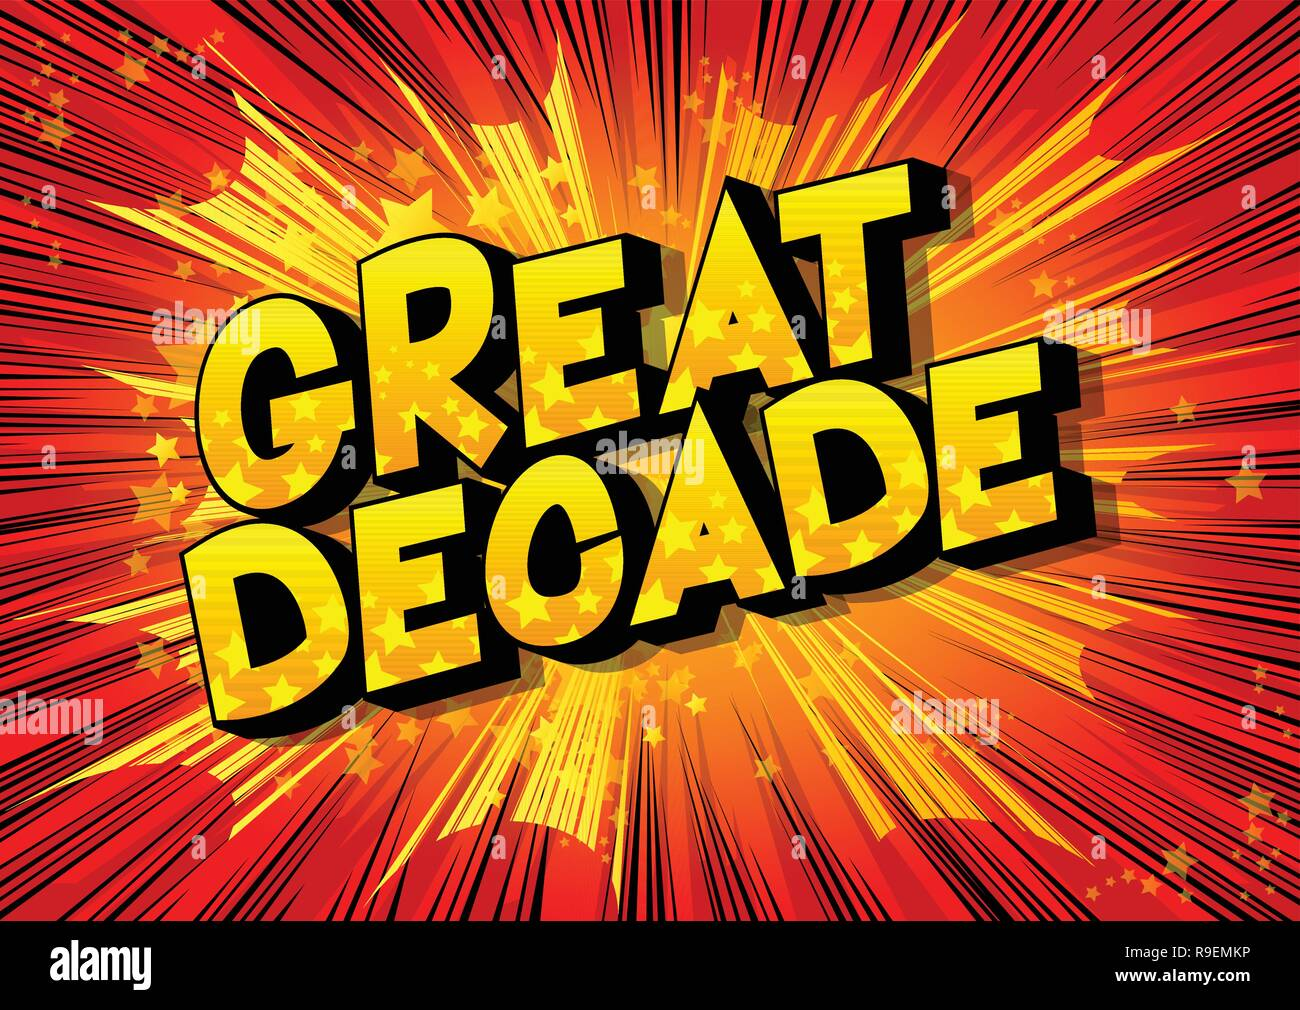 Great Decade - Vector illustrated comic book style phrase on abstract background. - Stock Vector